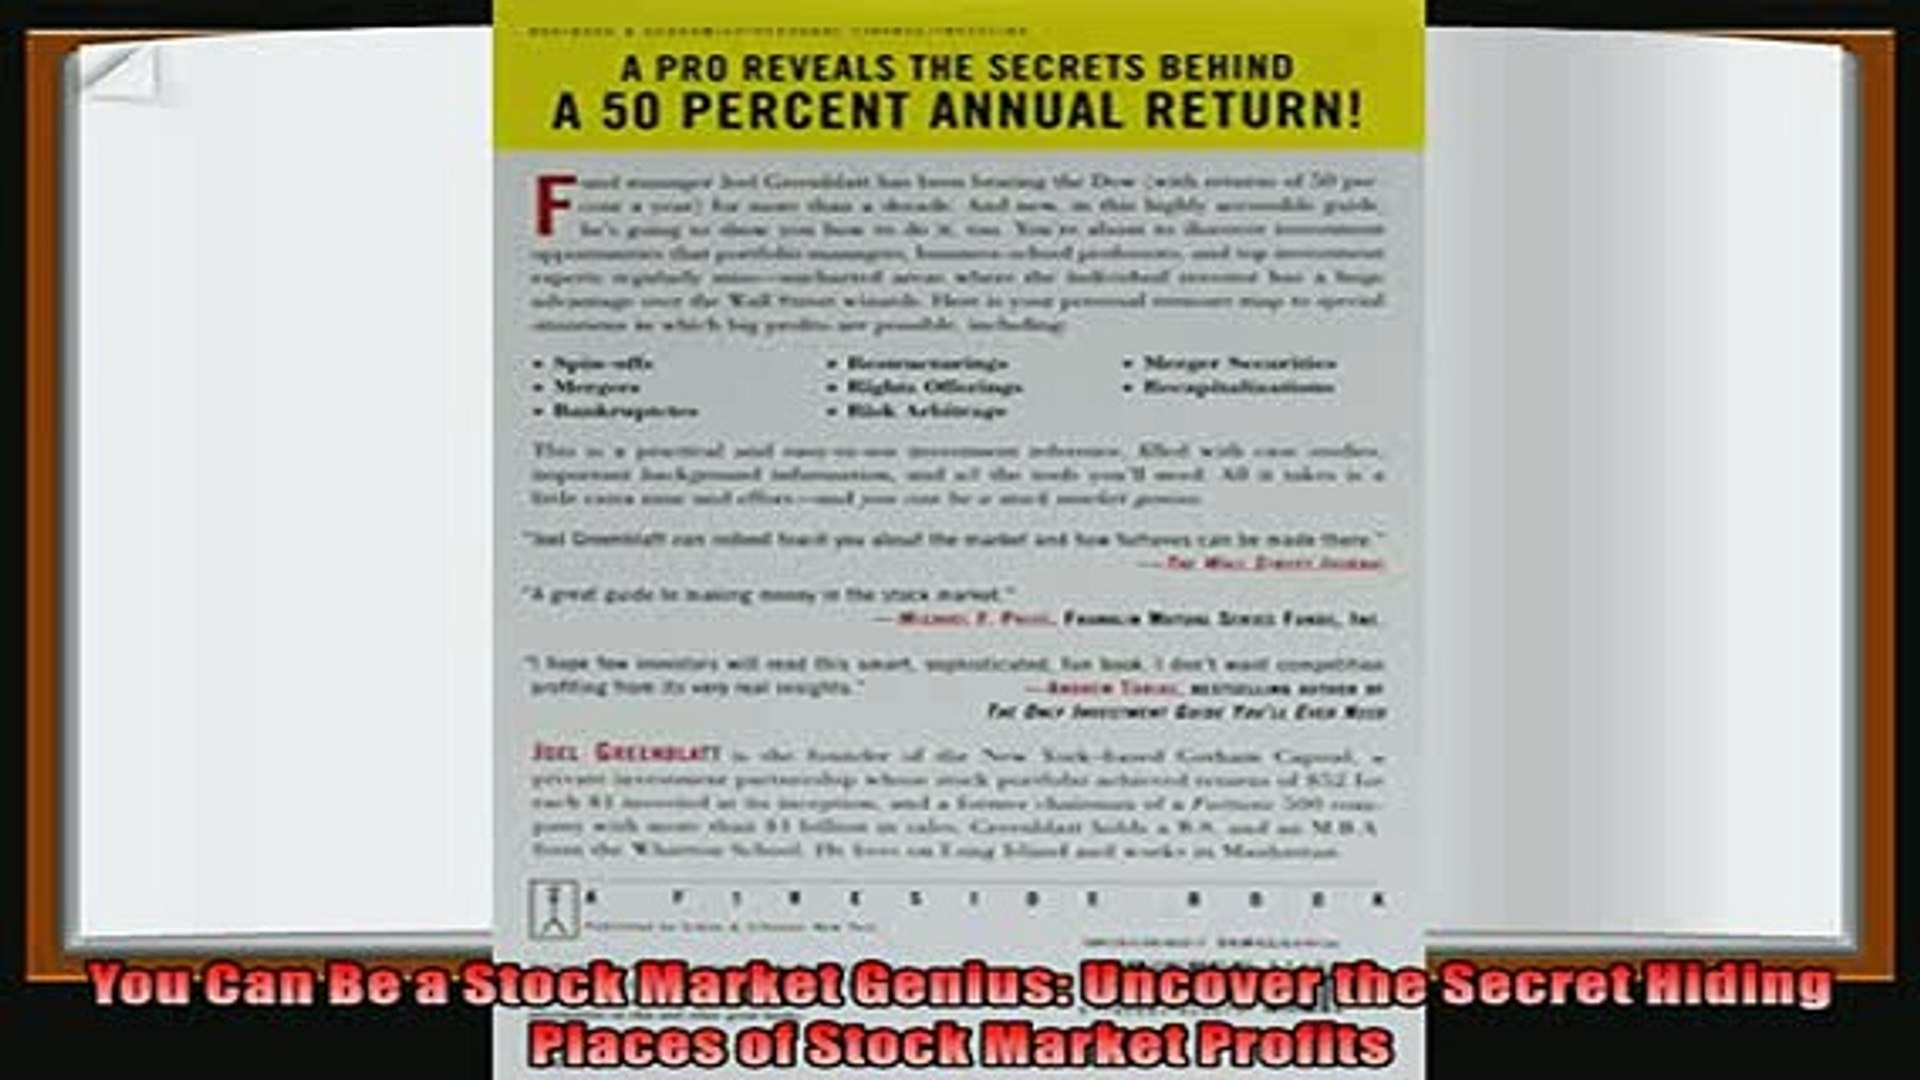 book online   You Can Be a Stock Market Genius Uncover the Secret Hiding Places of Stock Market Prof